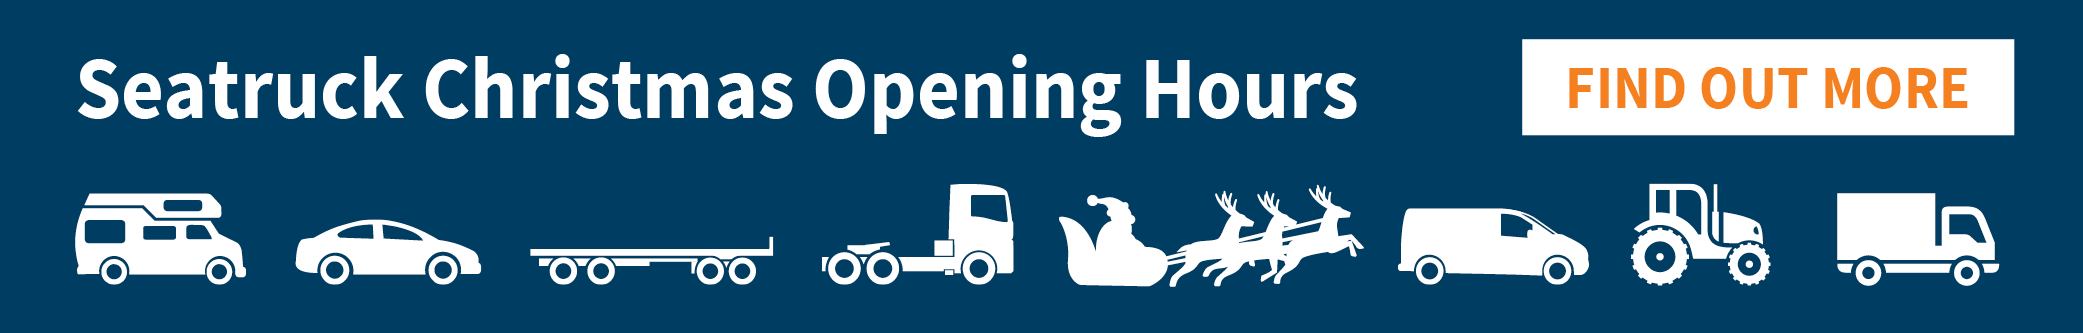 seatruck christmas opening hours